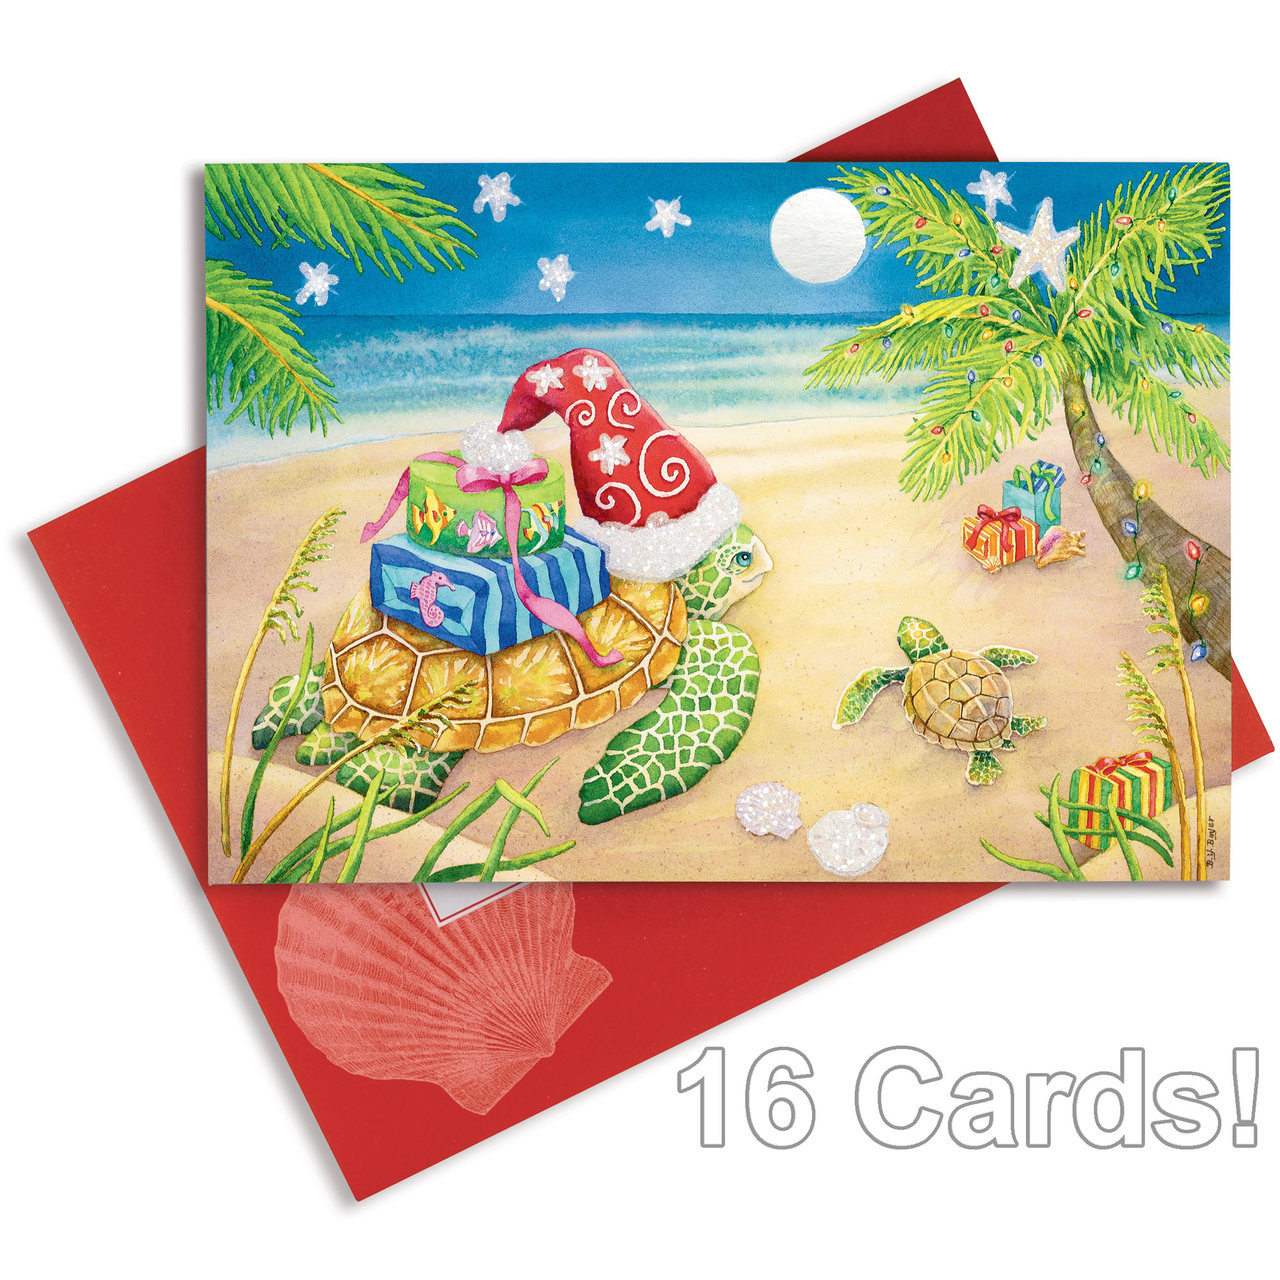 Glitter Christmas Cards.Christmas Cards Sea Turtle Embellished With Foil And Glitter 16 Per Box 25 506